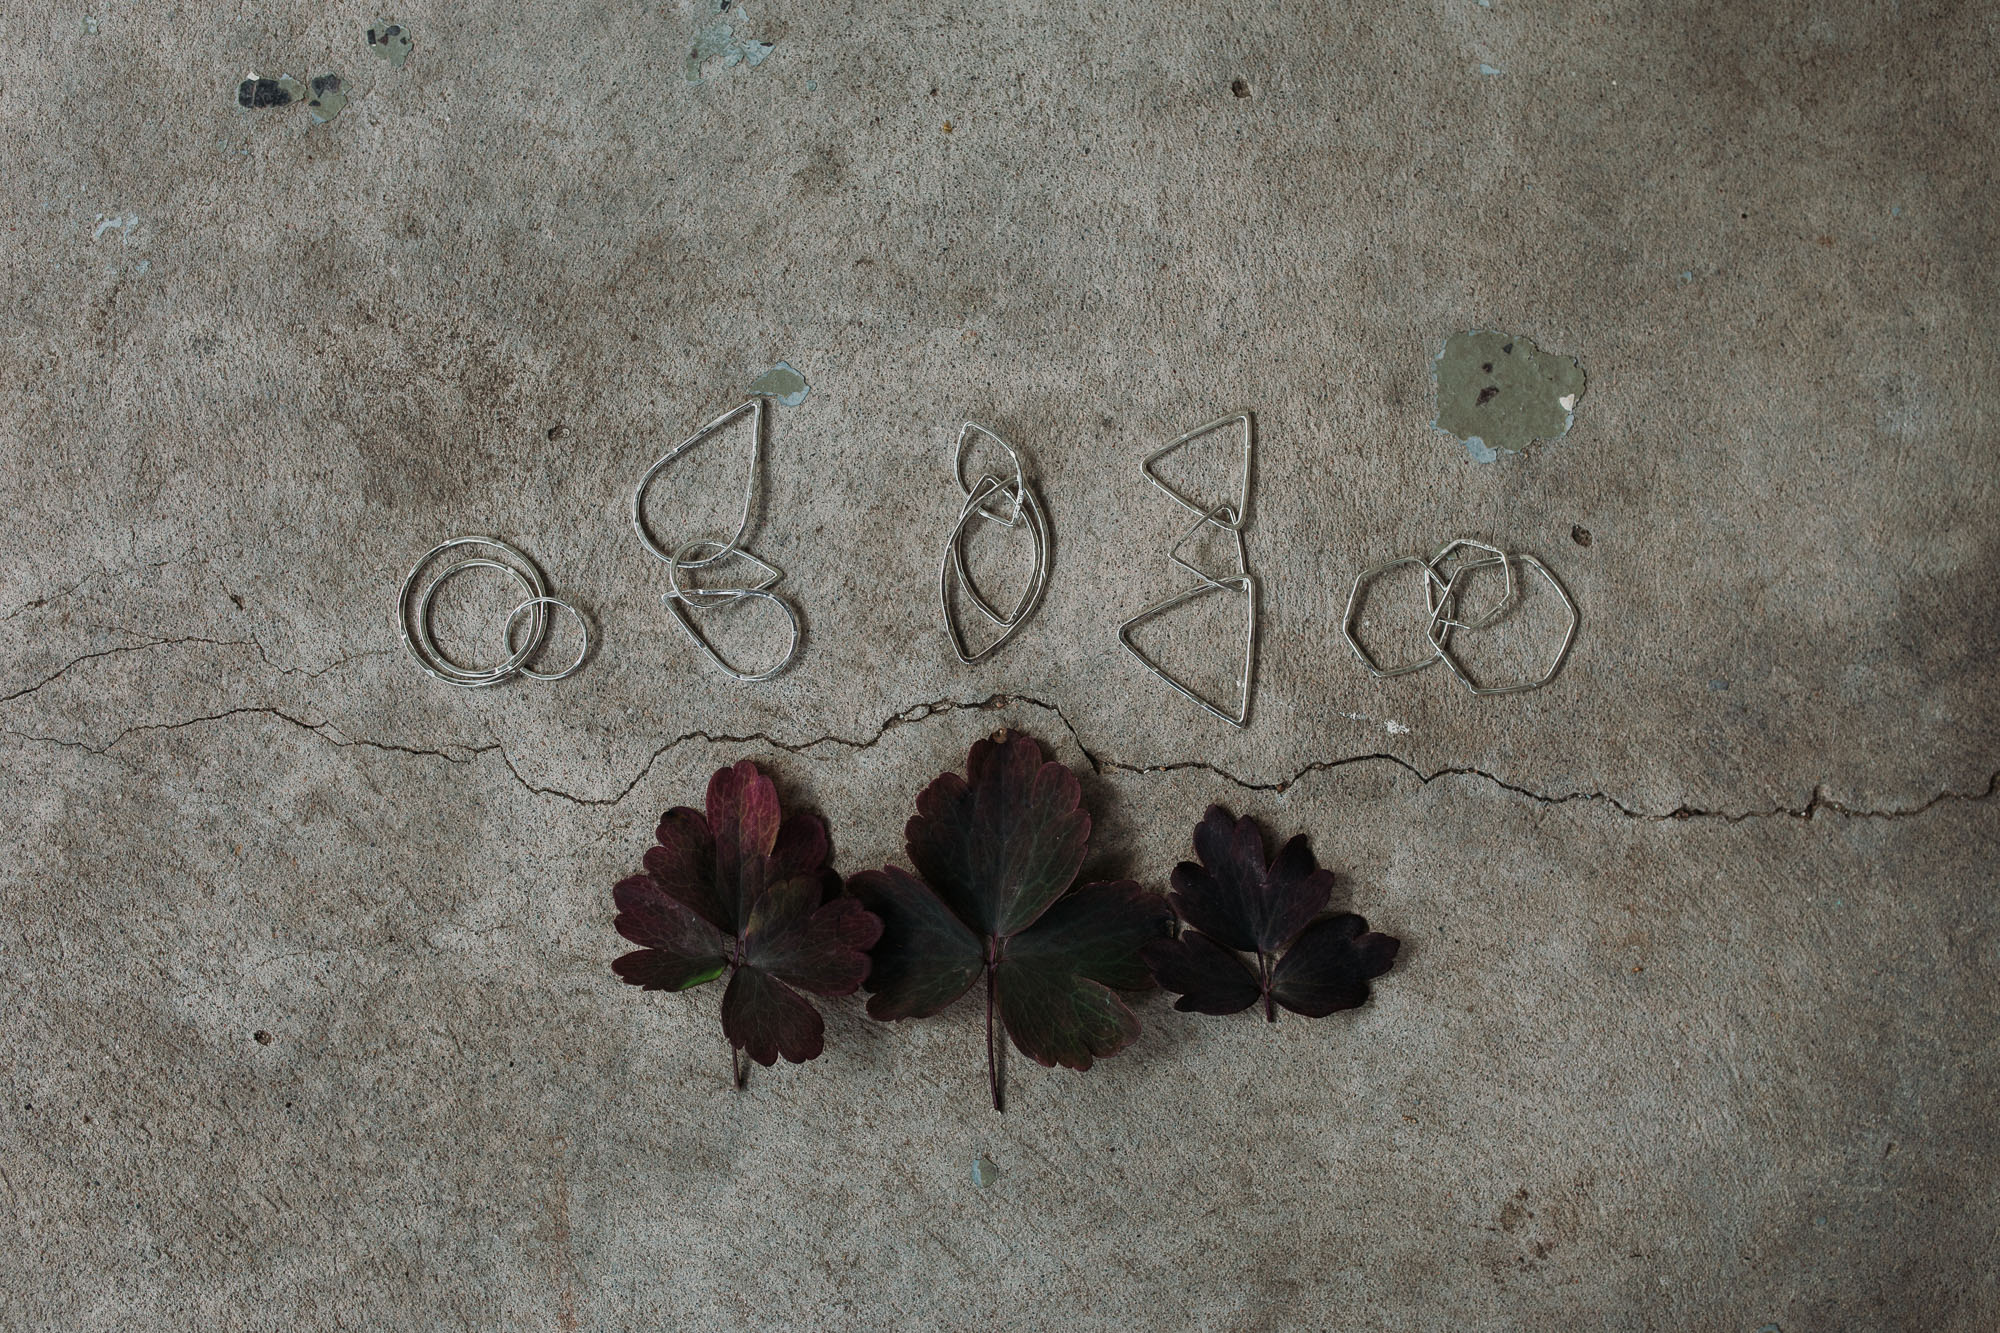 The primary line; Sphere, Drop, Leaf, Mountain and Crystal.  (ID: Five silver pendants lie on a cracked concrete floor, just above three dark red aquilegia leaves)